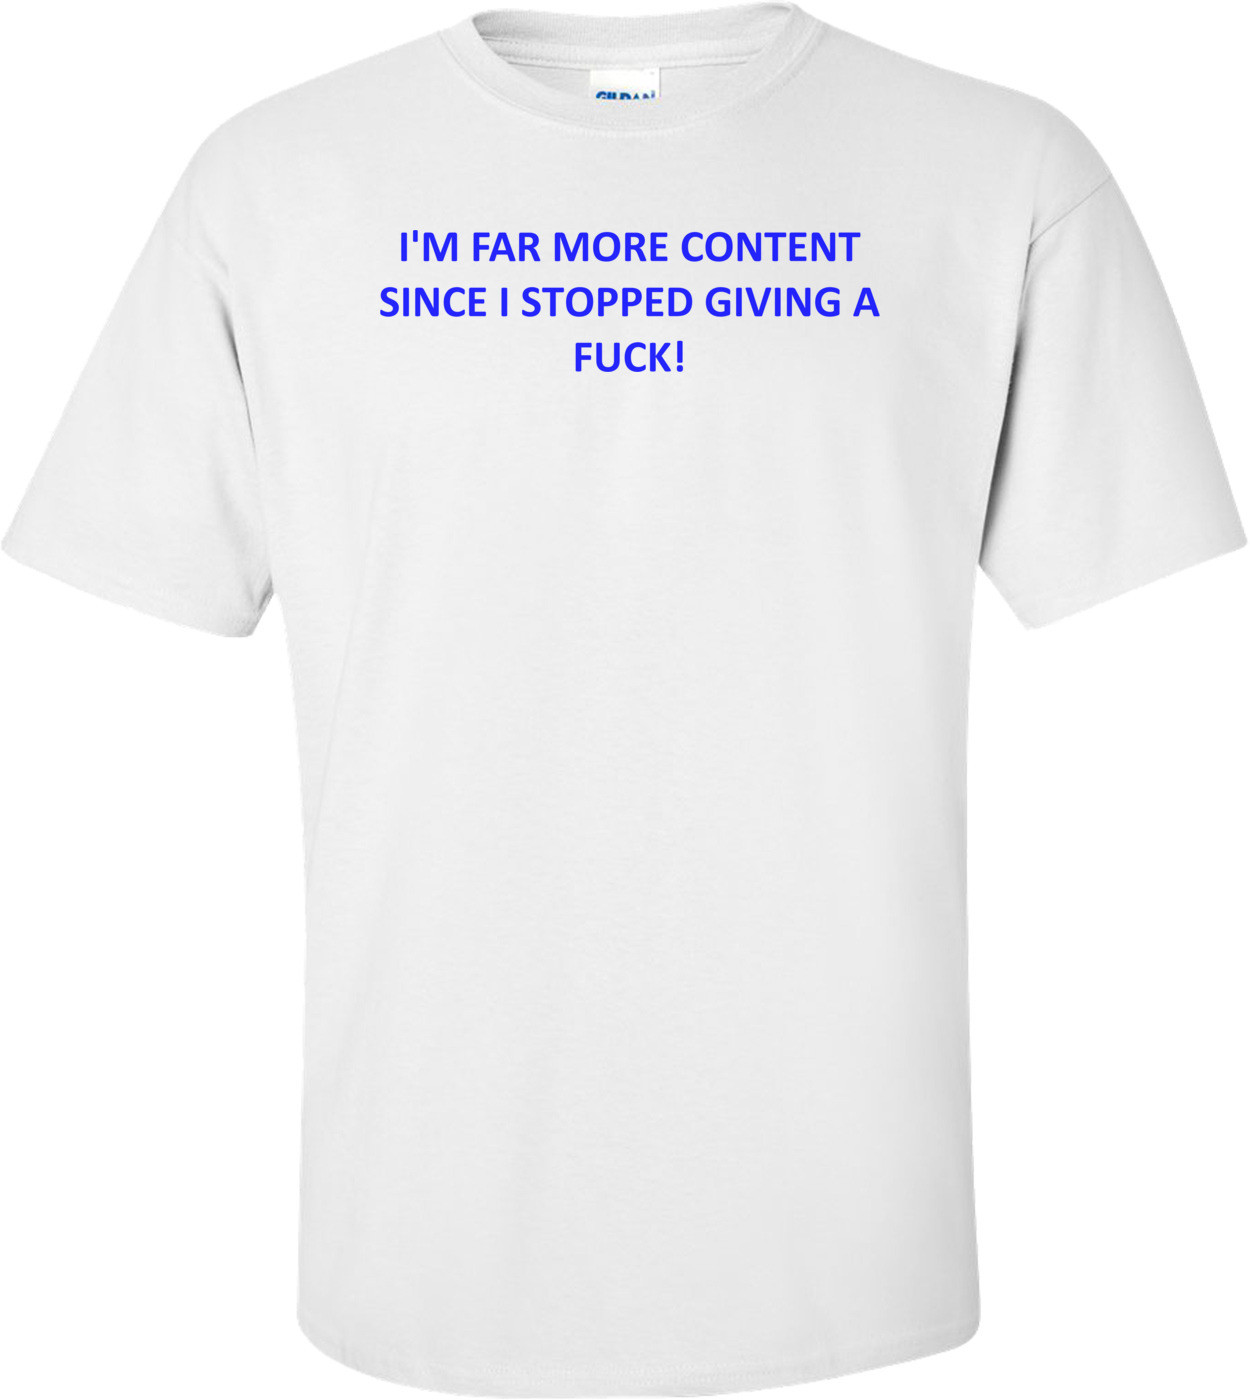 I'M FAR MORE CONTENT SINCE I STOPPED GIVING A FUCK! Shirt